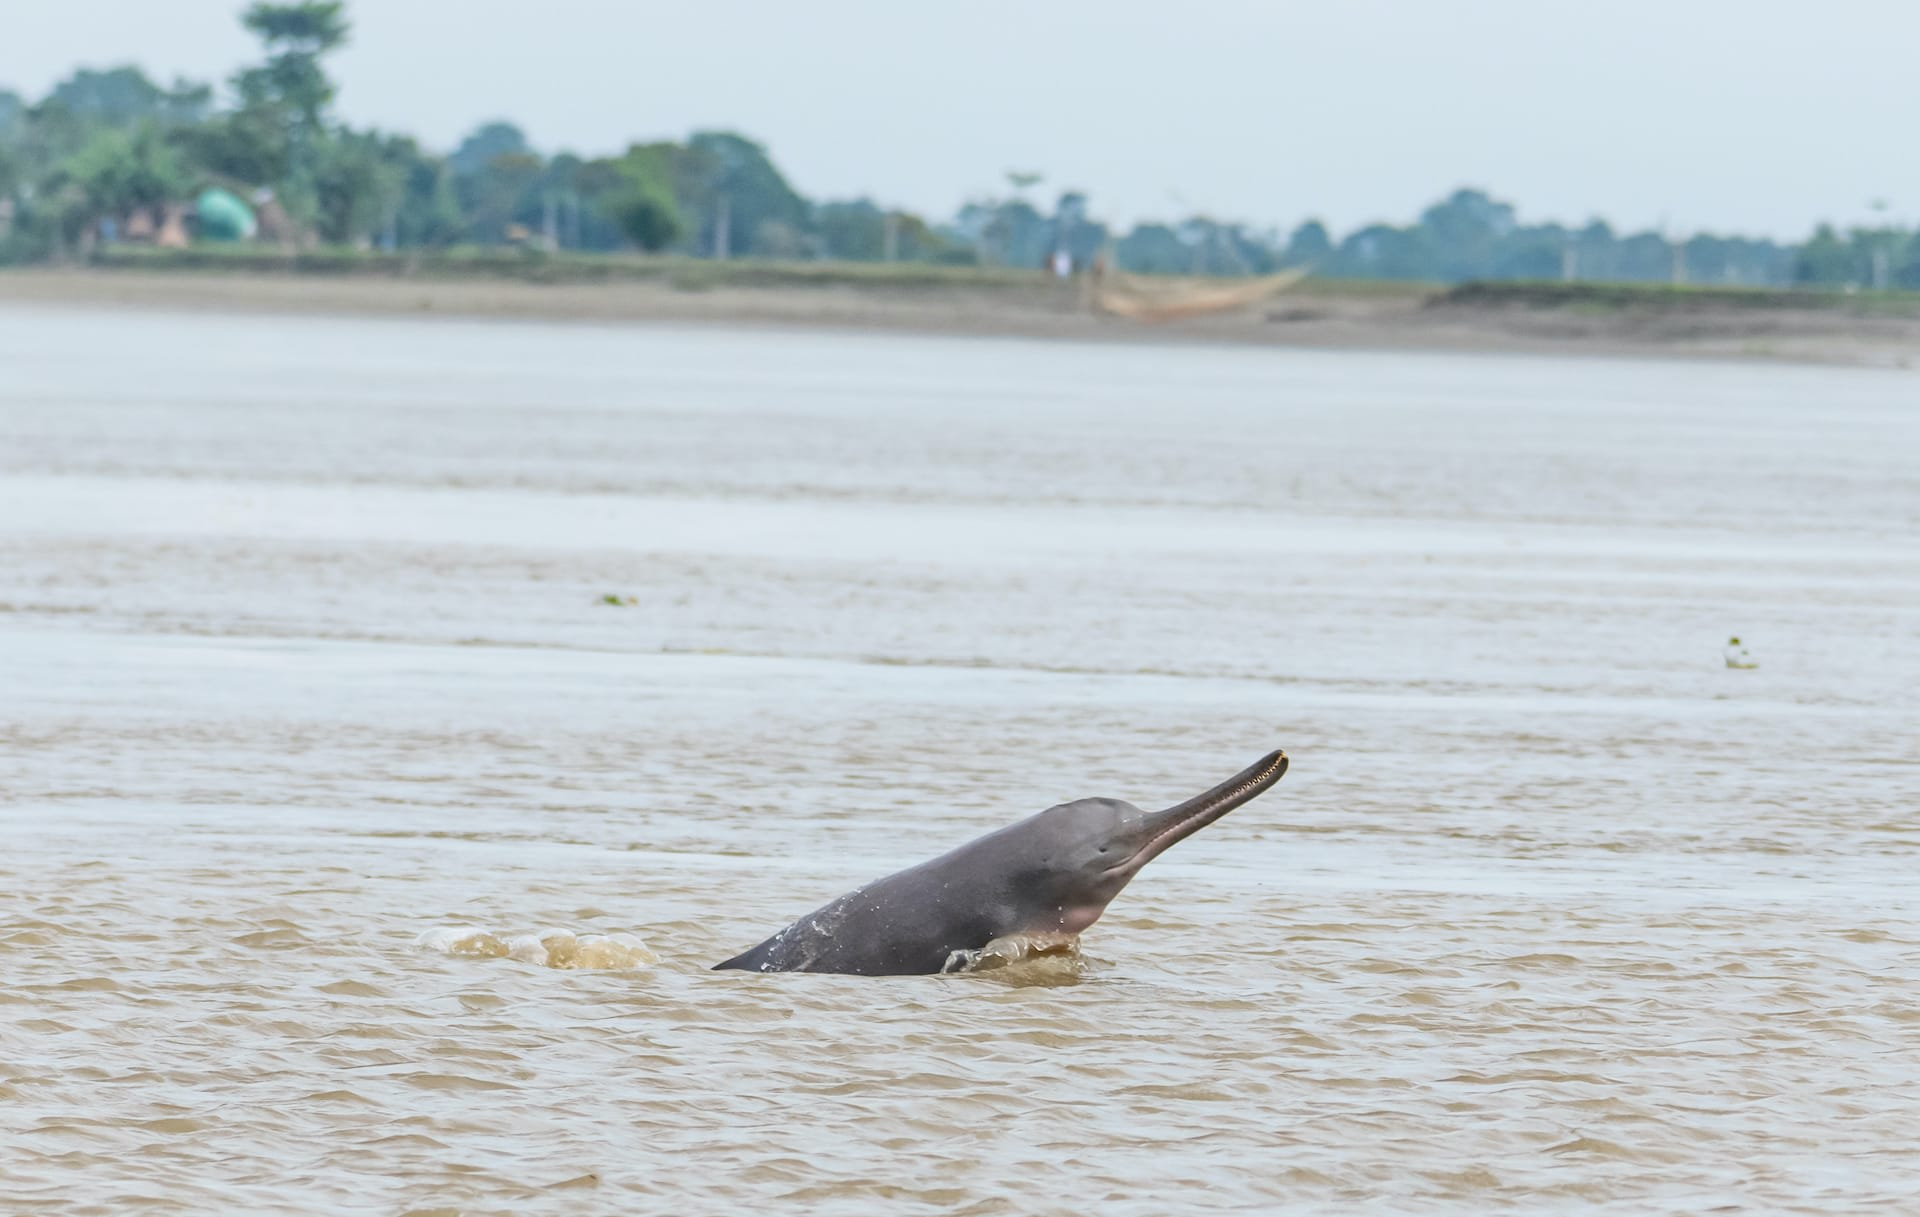 India's national aquatic animal, the river dolphin grows up to 2 to 2.5 metres in length. Its elongated snout can reach lengths of 20 per cent of its total body. Photo: Lakshi Nanda Majumdar  A South Asian river dolphin surfaces to breathe in the Brahmaputra river in Mayong village in Assam. In India, the dolphins are mainly found in the Ganga and Brahmaputra river systems. Photo: Lakshi Nanda Majumdar